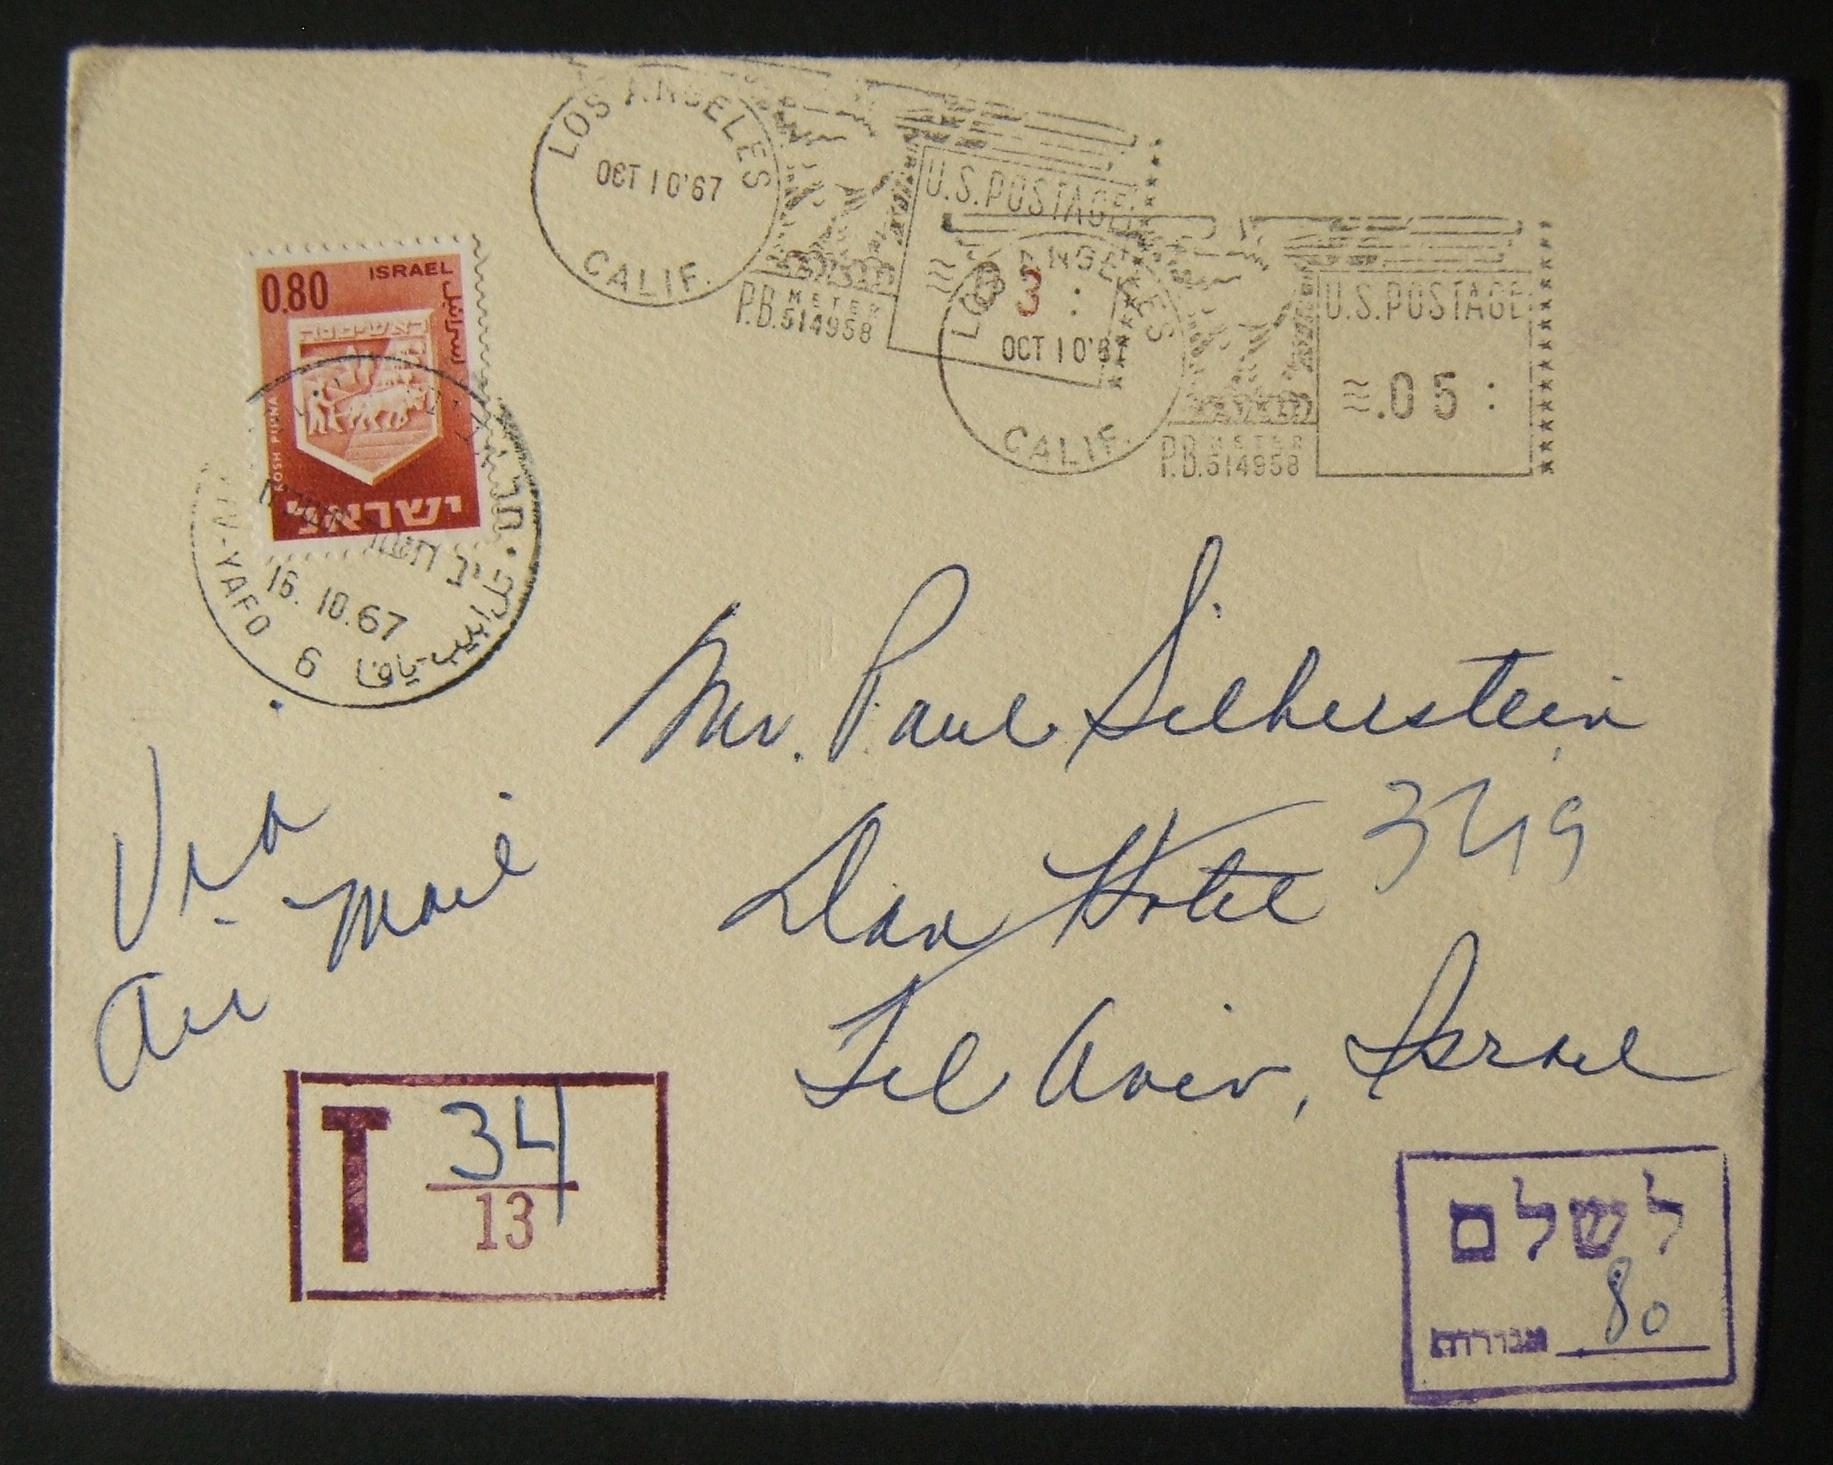 1967 incoming US taxed mail: OCT 10 '67 airmail cover ex LOS ANGELES to TLV meter franked twice $0.03 & $0.05 but underfranked for airmail and taxed in Israel 0.80L using 1965/67 1